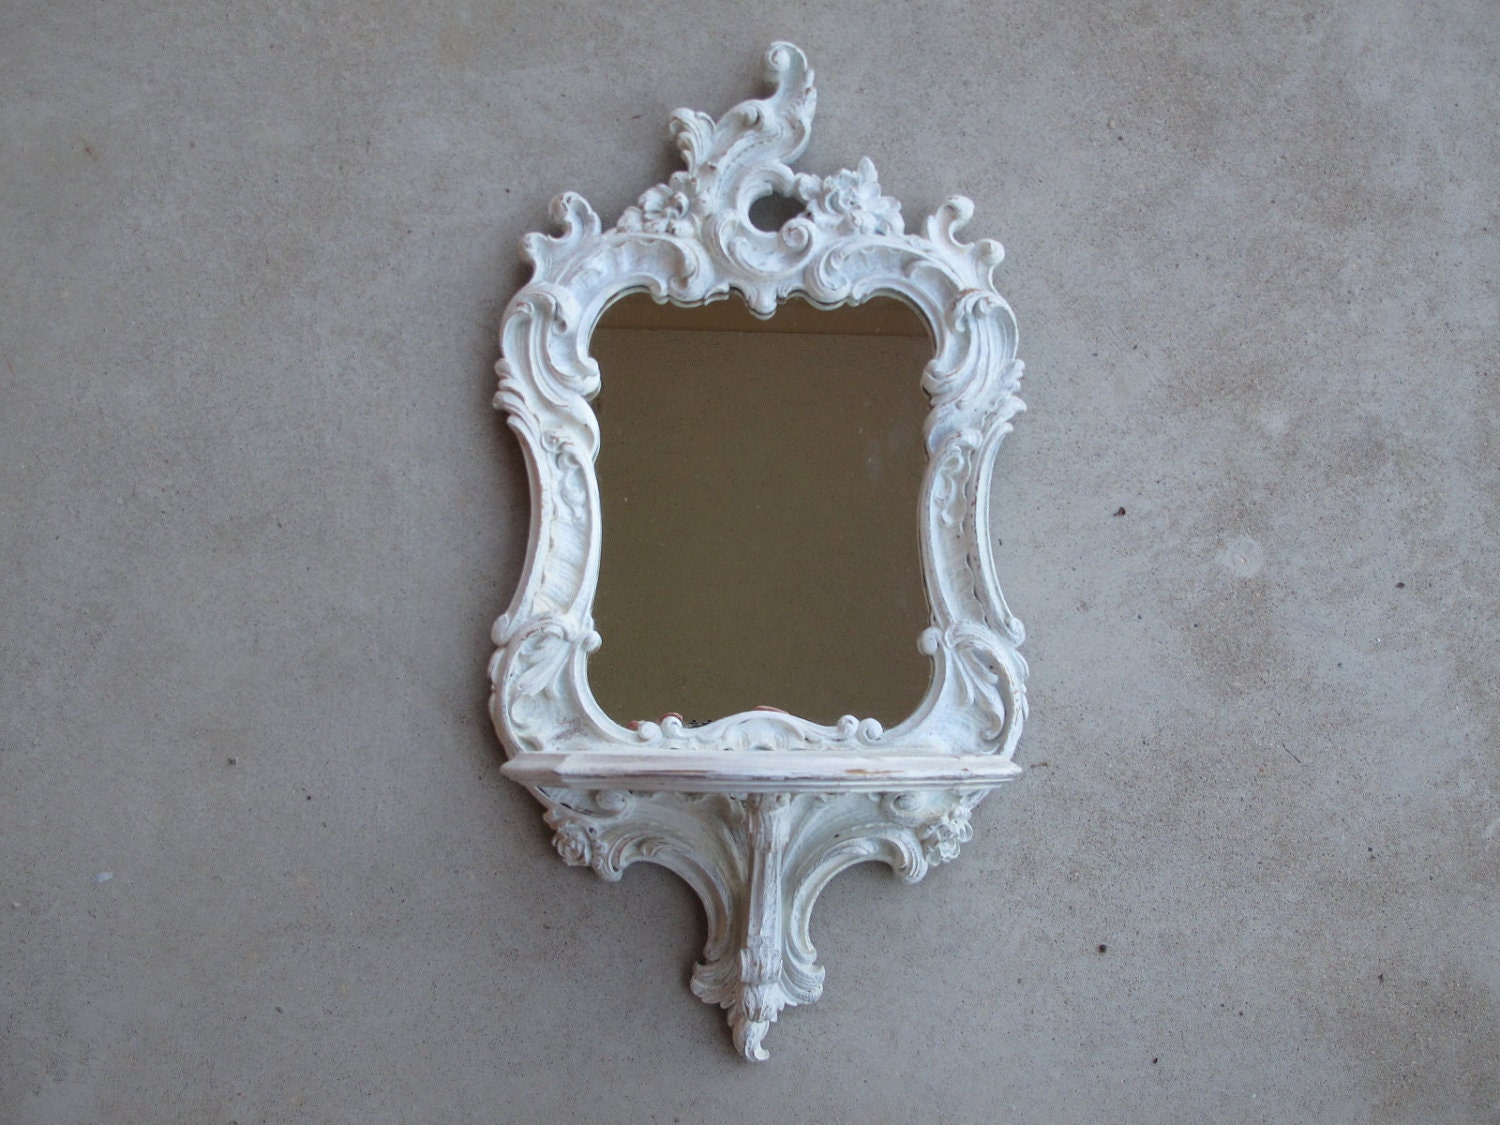 Vintage Shabby Chic Ornate Wall Mirror / Wall Mirror with Shelf Made by Syroco Wood / Distressed, Home Decor, Wedding Decor